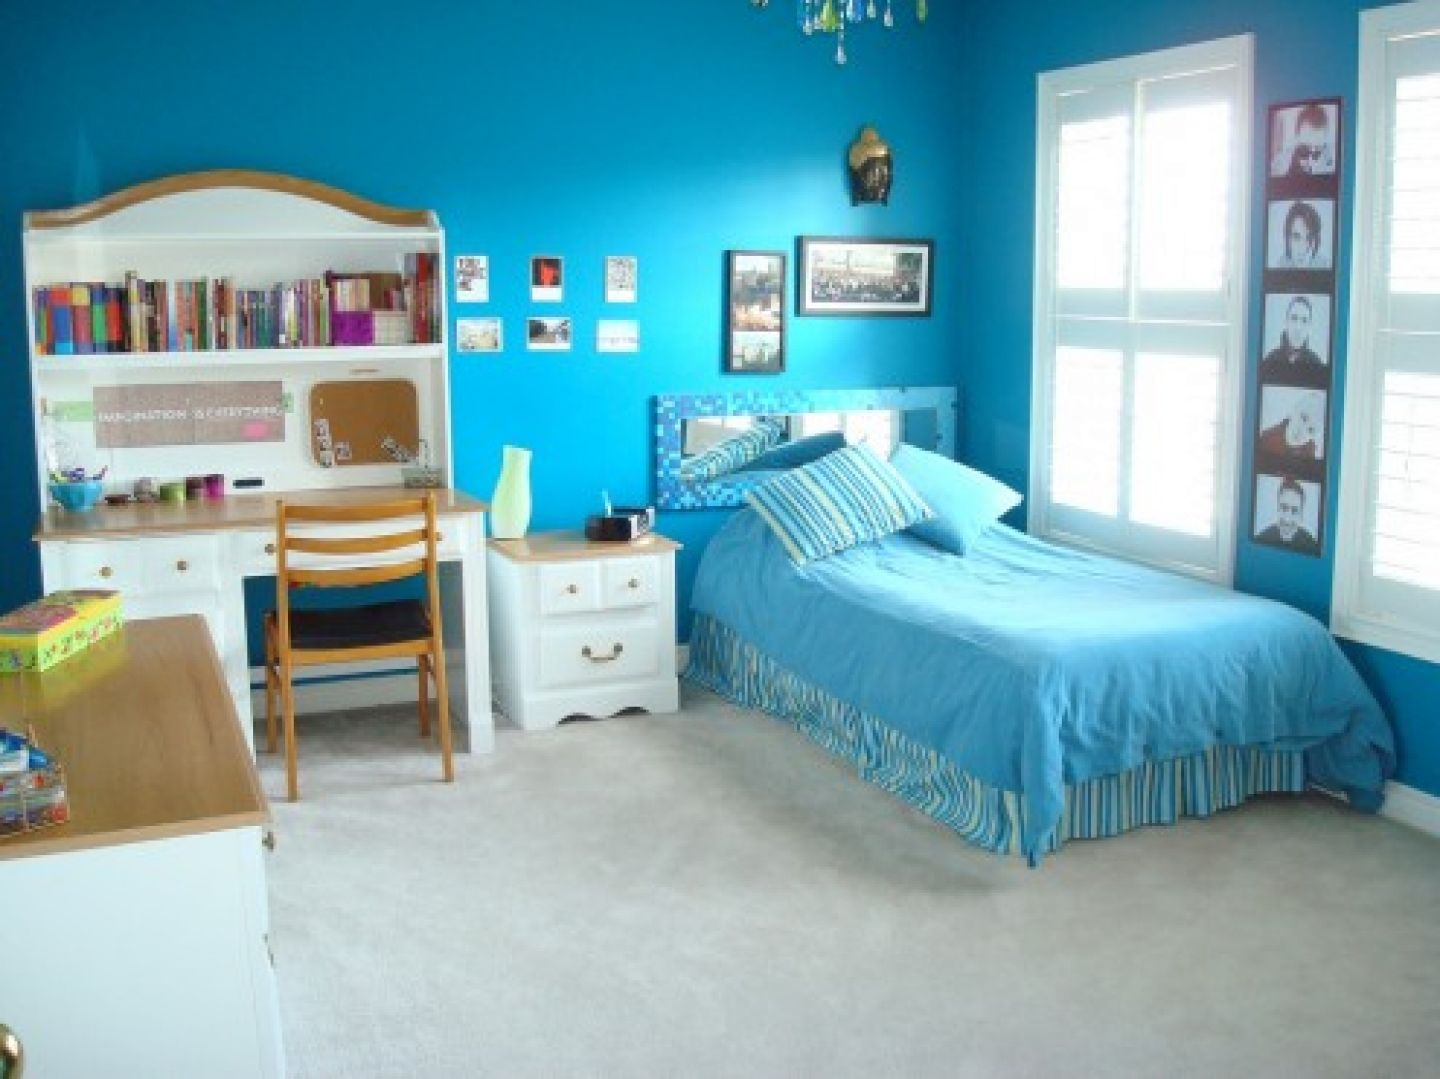 Bedroom Decorating Ideas For Teenage Girls awesome teen girl bedroom decorating ideas with blue bedding